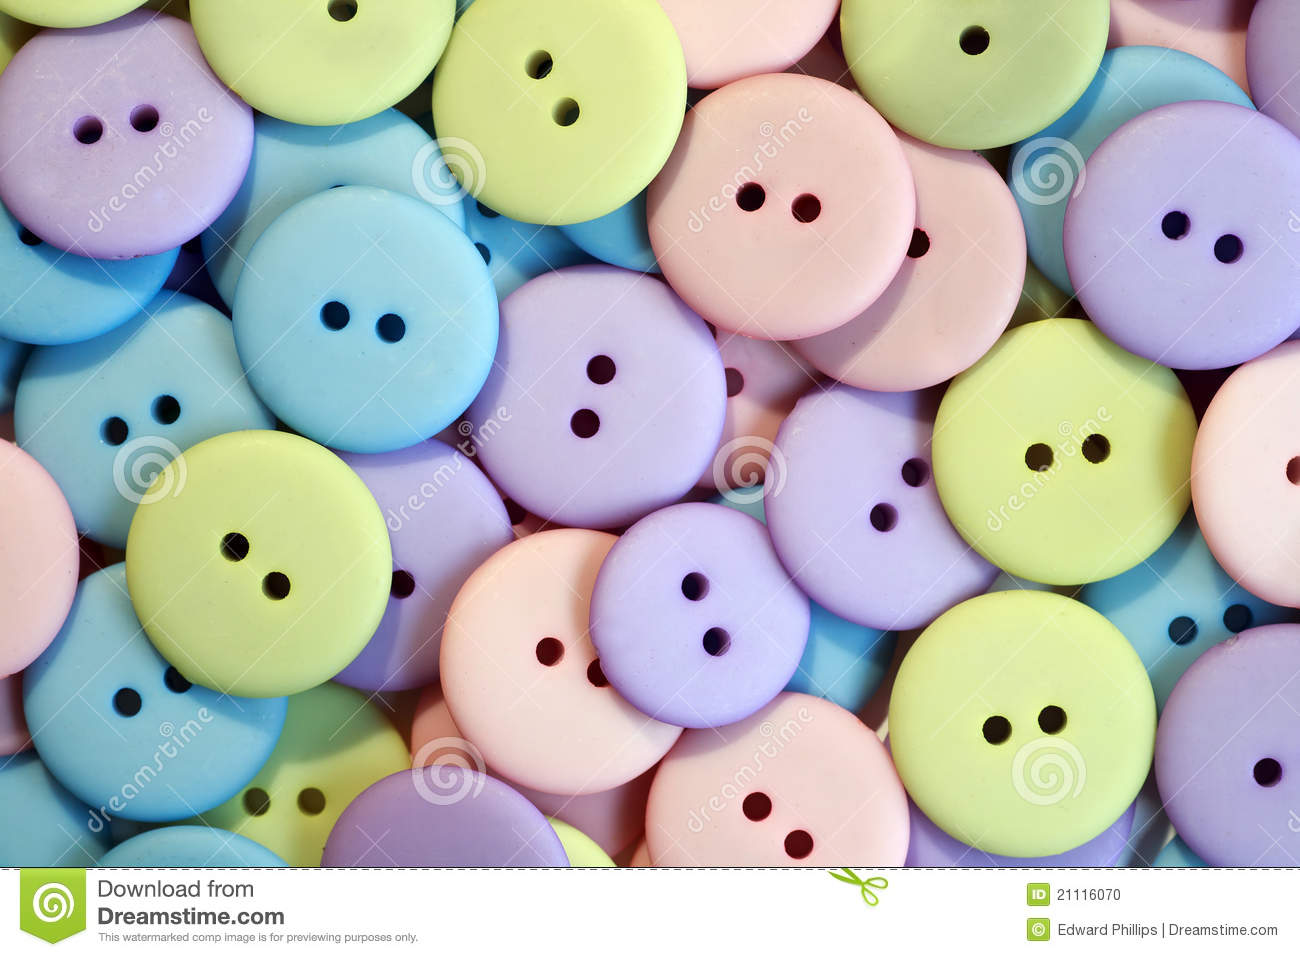 Pastel Buttons Stock Photo - Image: 21116070